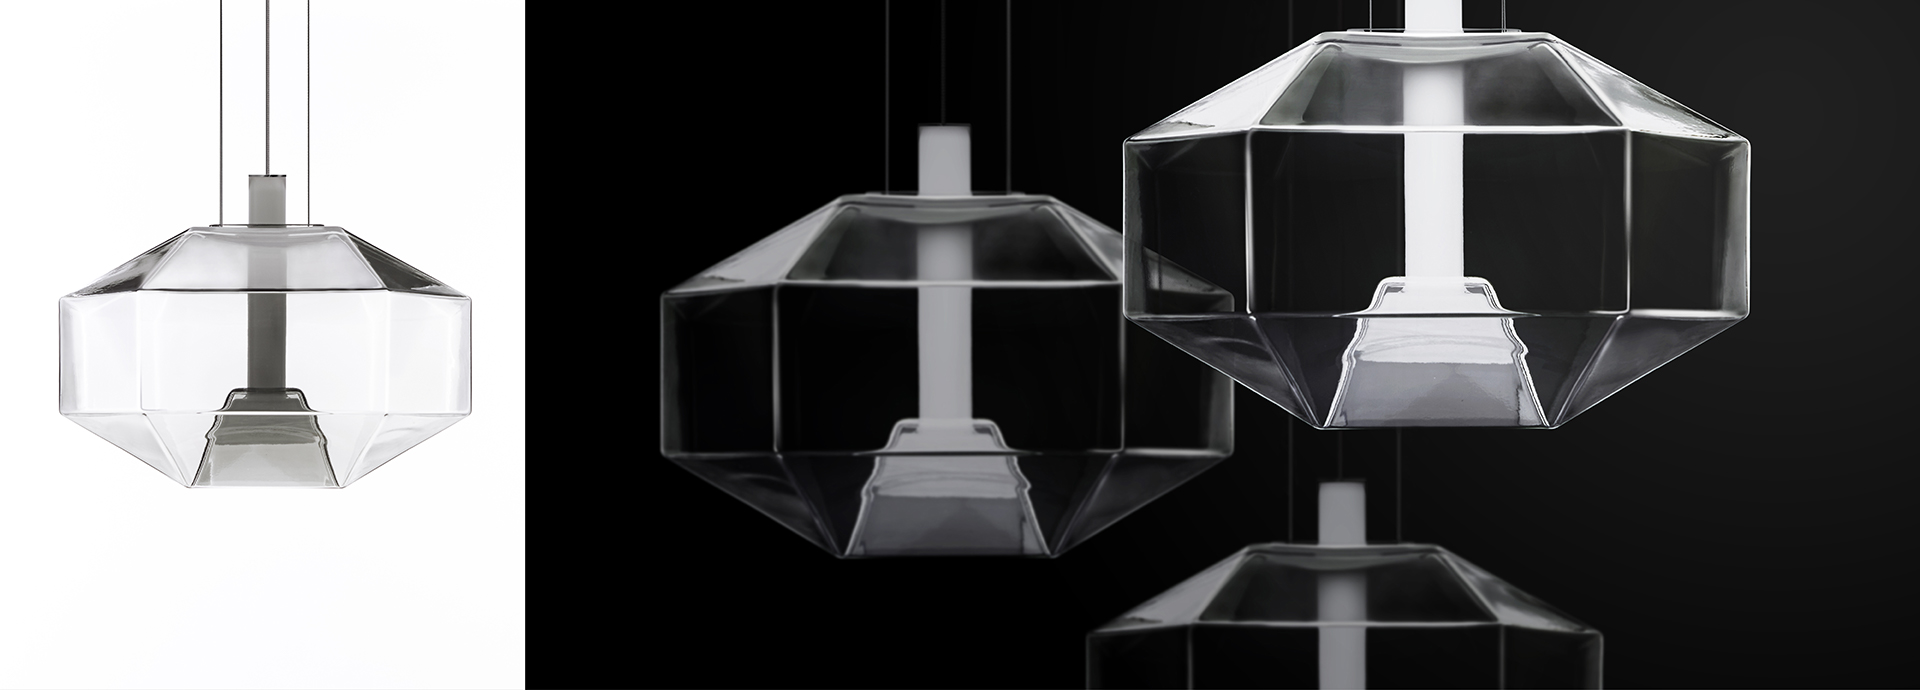 Stone is a pendant lamp, designed by Hangar Design Group for Vistosi